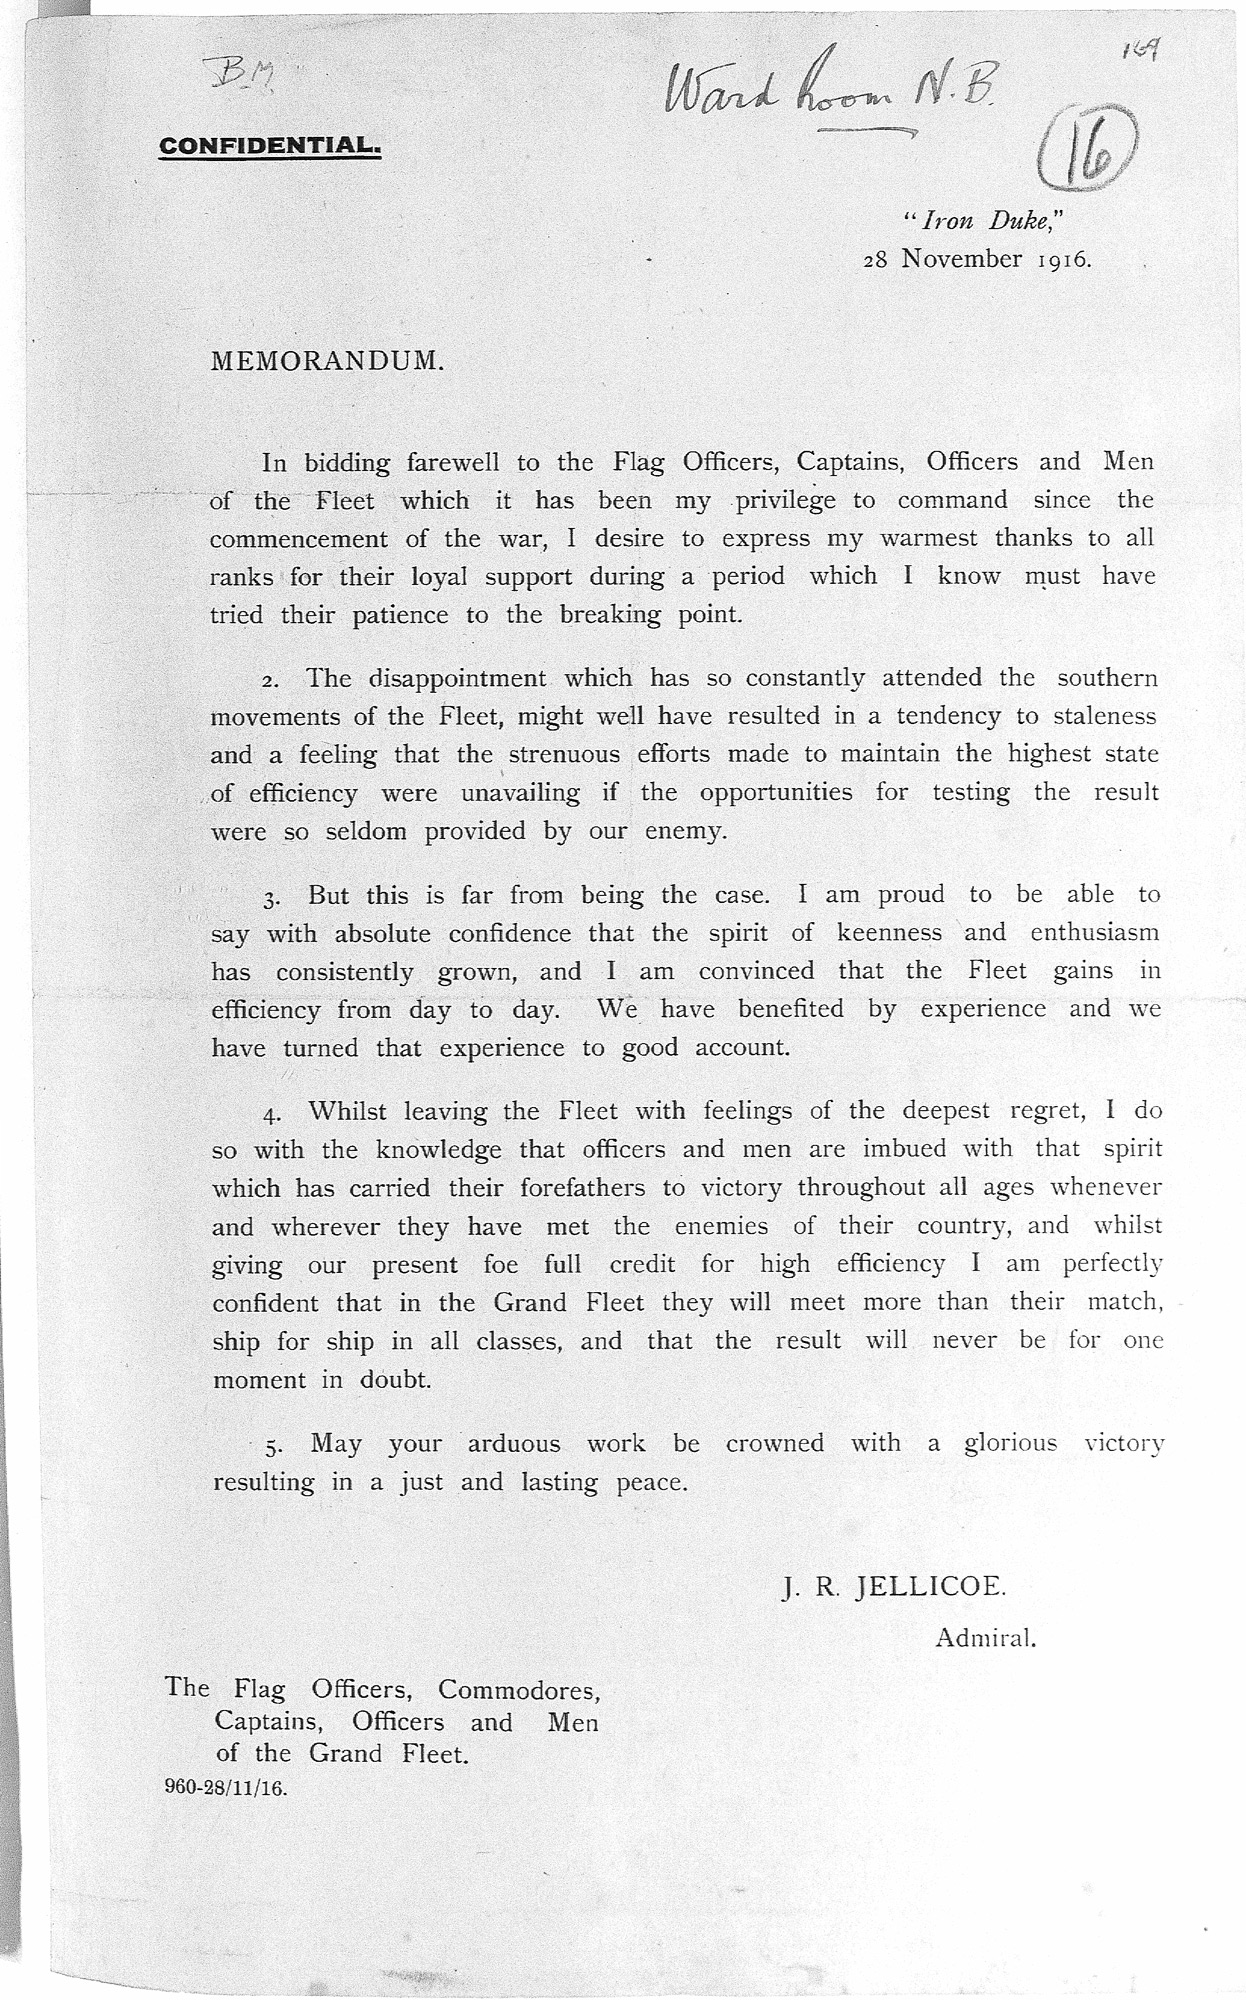 Memorandum issued by Admiral Jellicoe when he left the post of Commander-in-Chief of The Grand Fleet to become First Sea Lord in 1916.